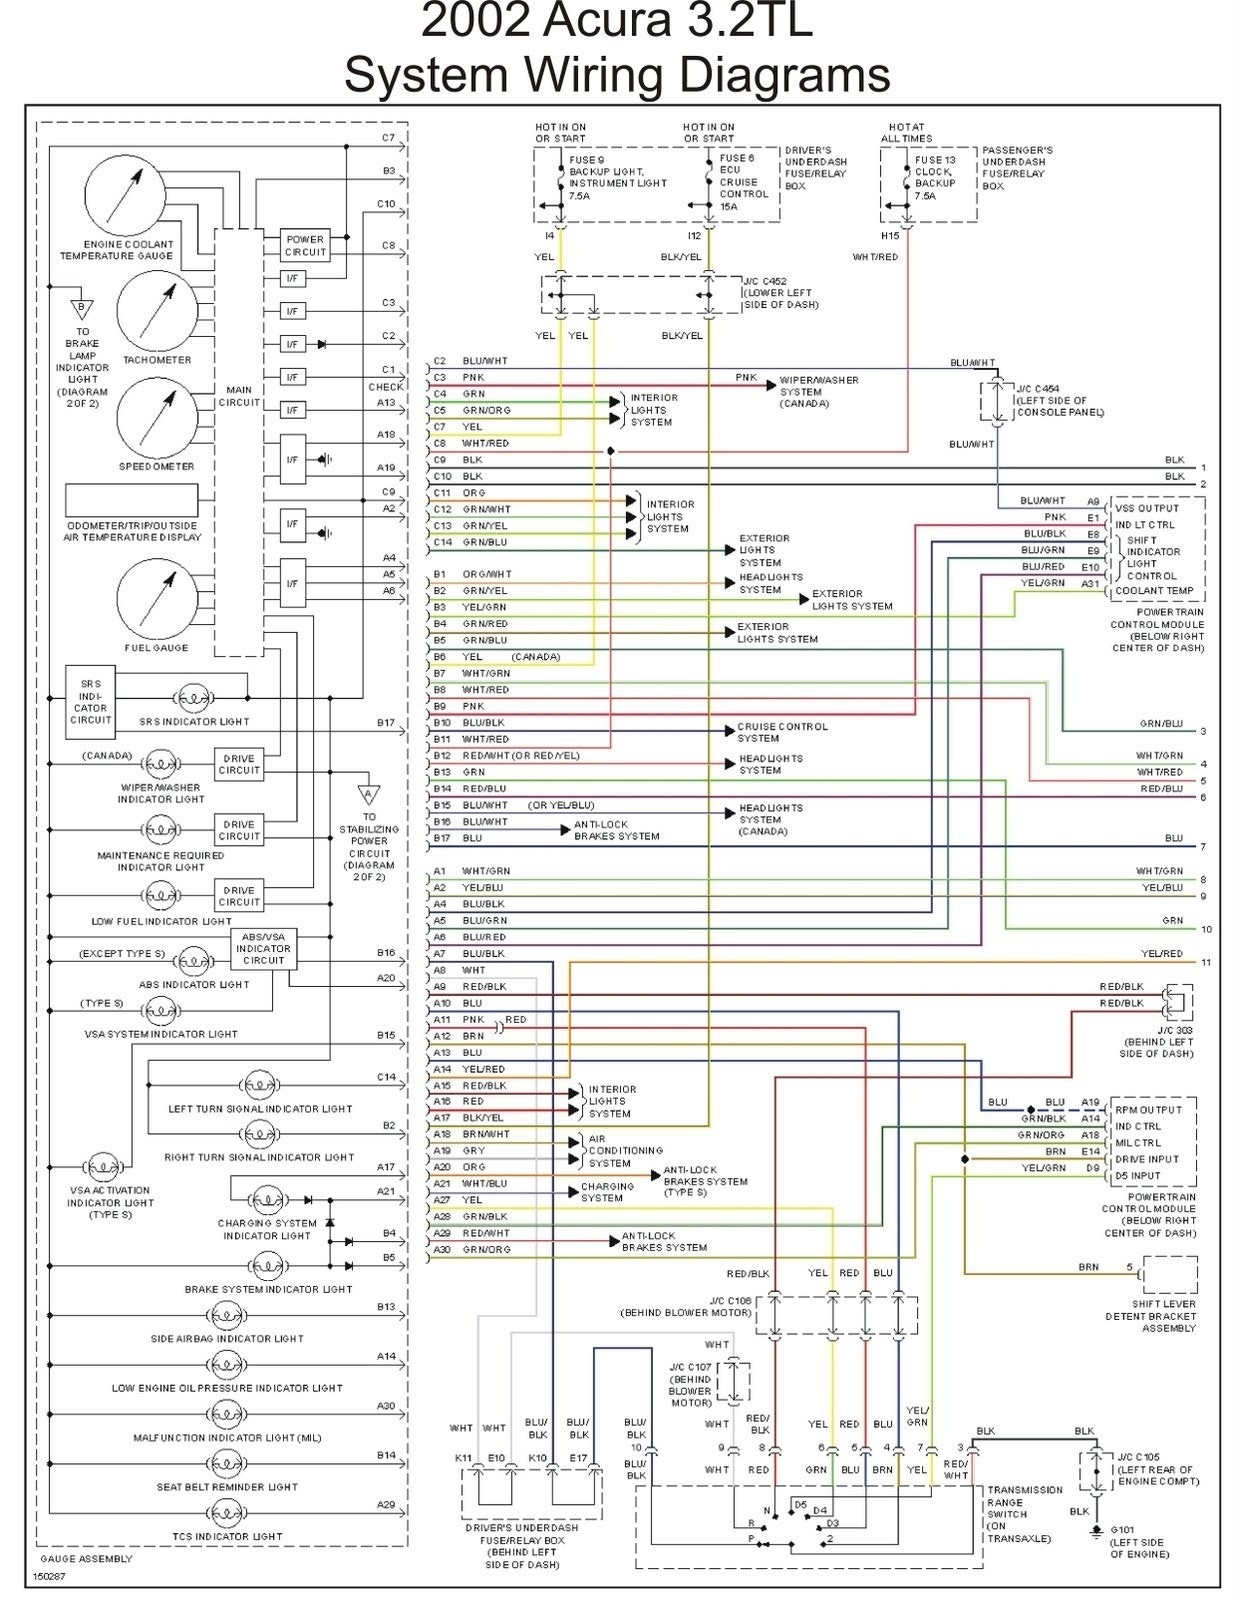 Honda Civic 1997 Engine Diagram K20 Swap To A 95 Hatch Fuse Box Gmc Yukon Bustion Chamber Of